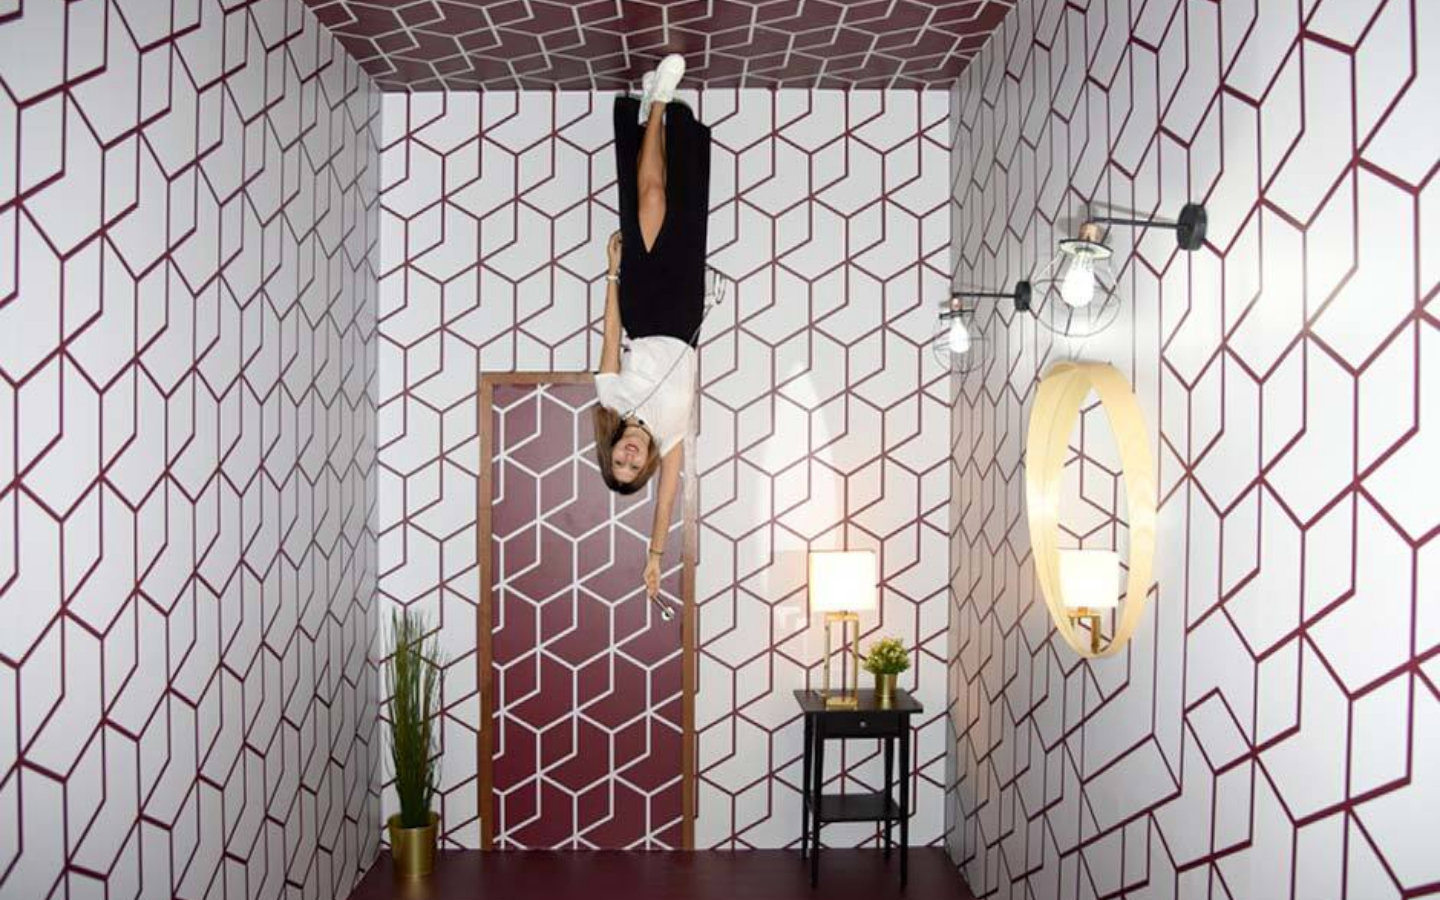 Upside Down Room at Museum of Illusions